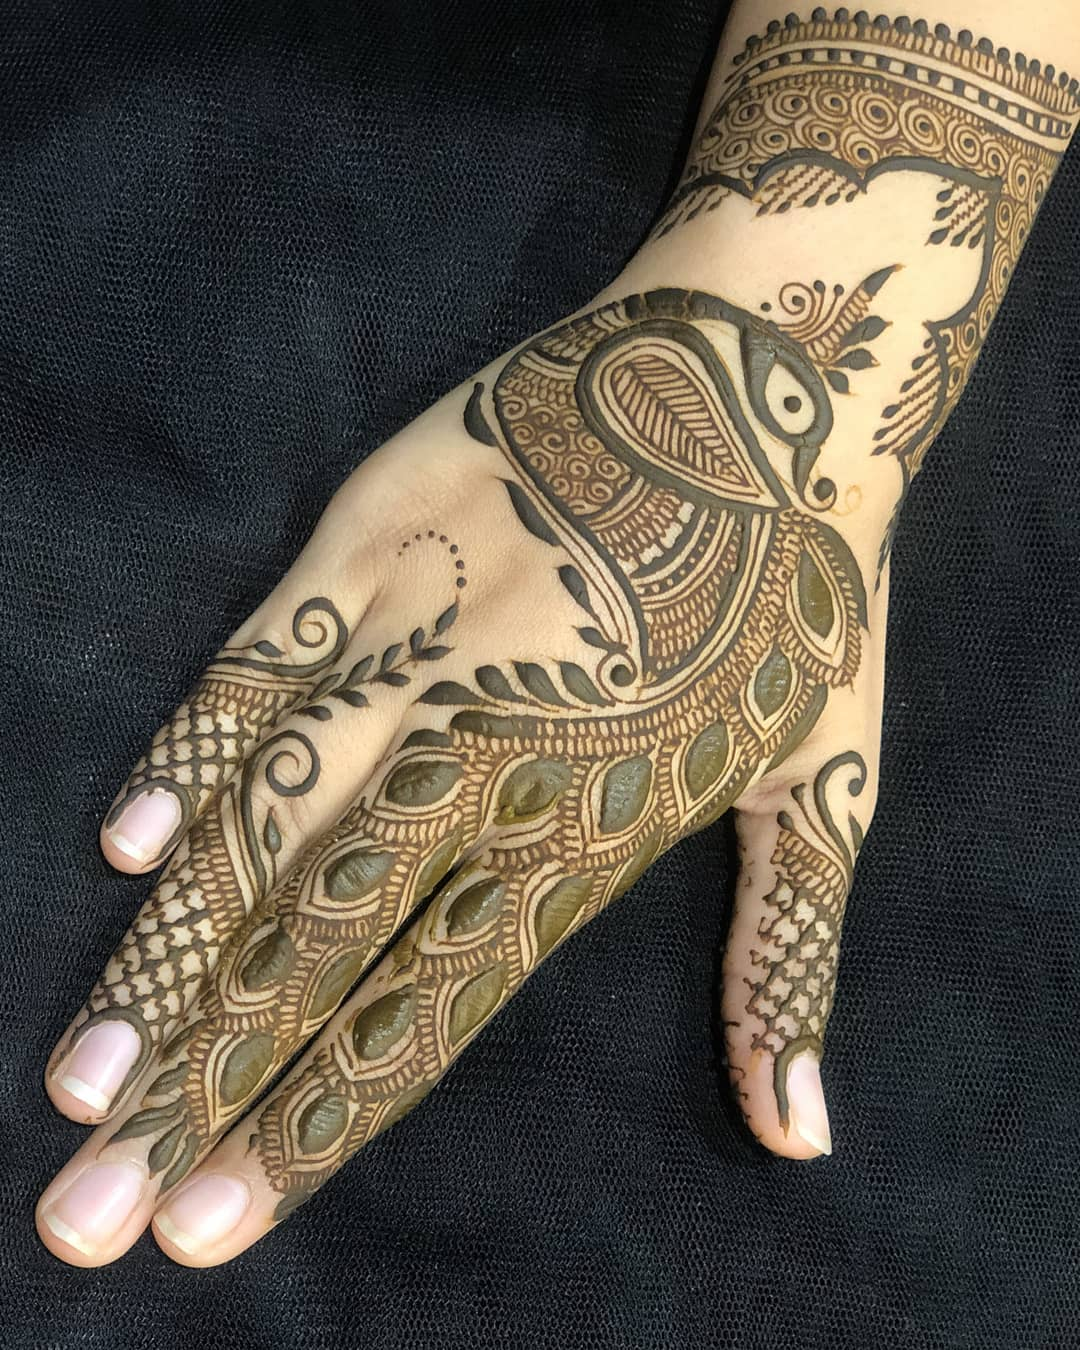 Pleasing Peacock Mehndi Design For Back Of The Palm